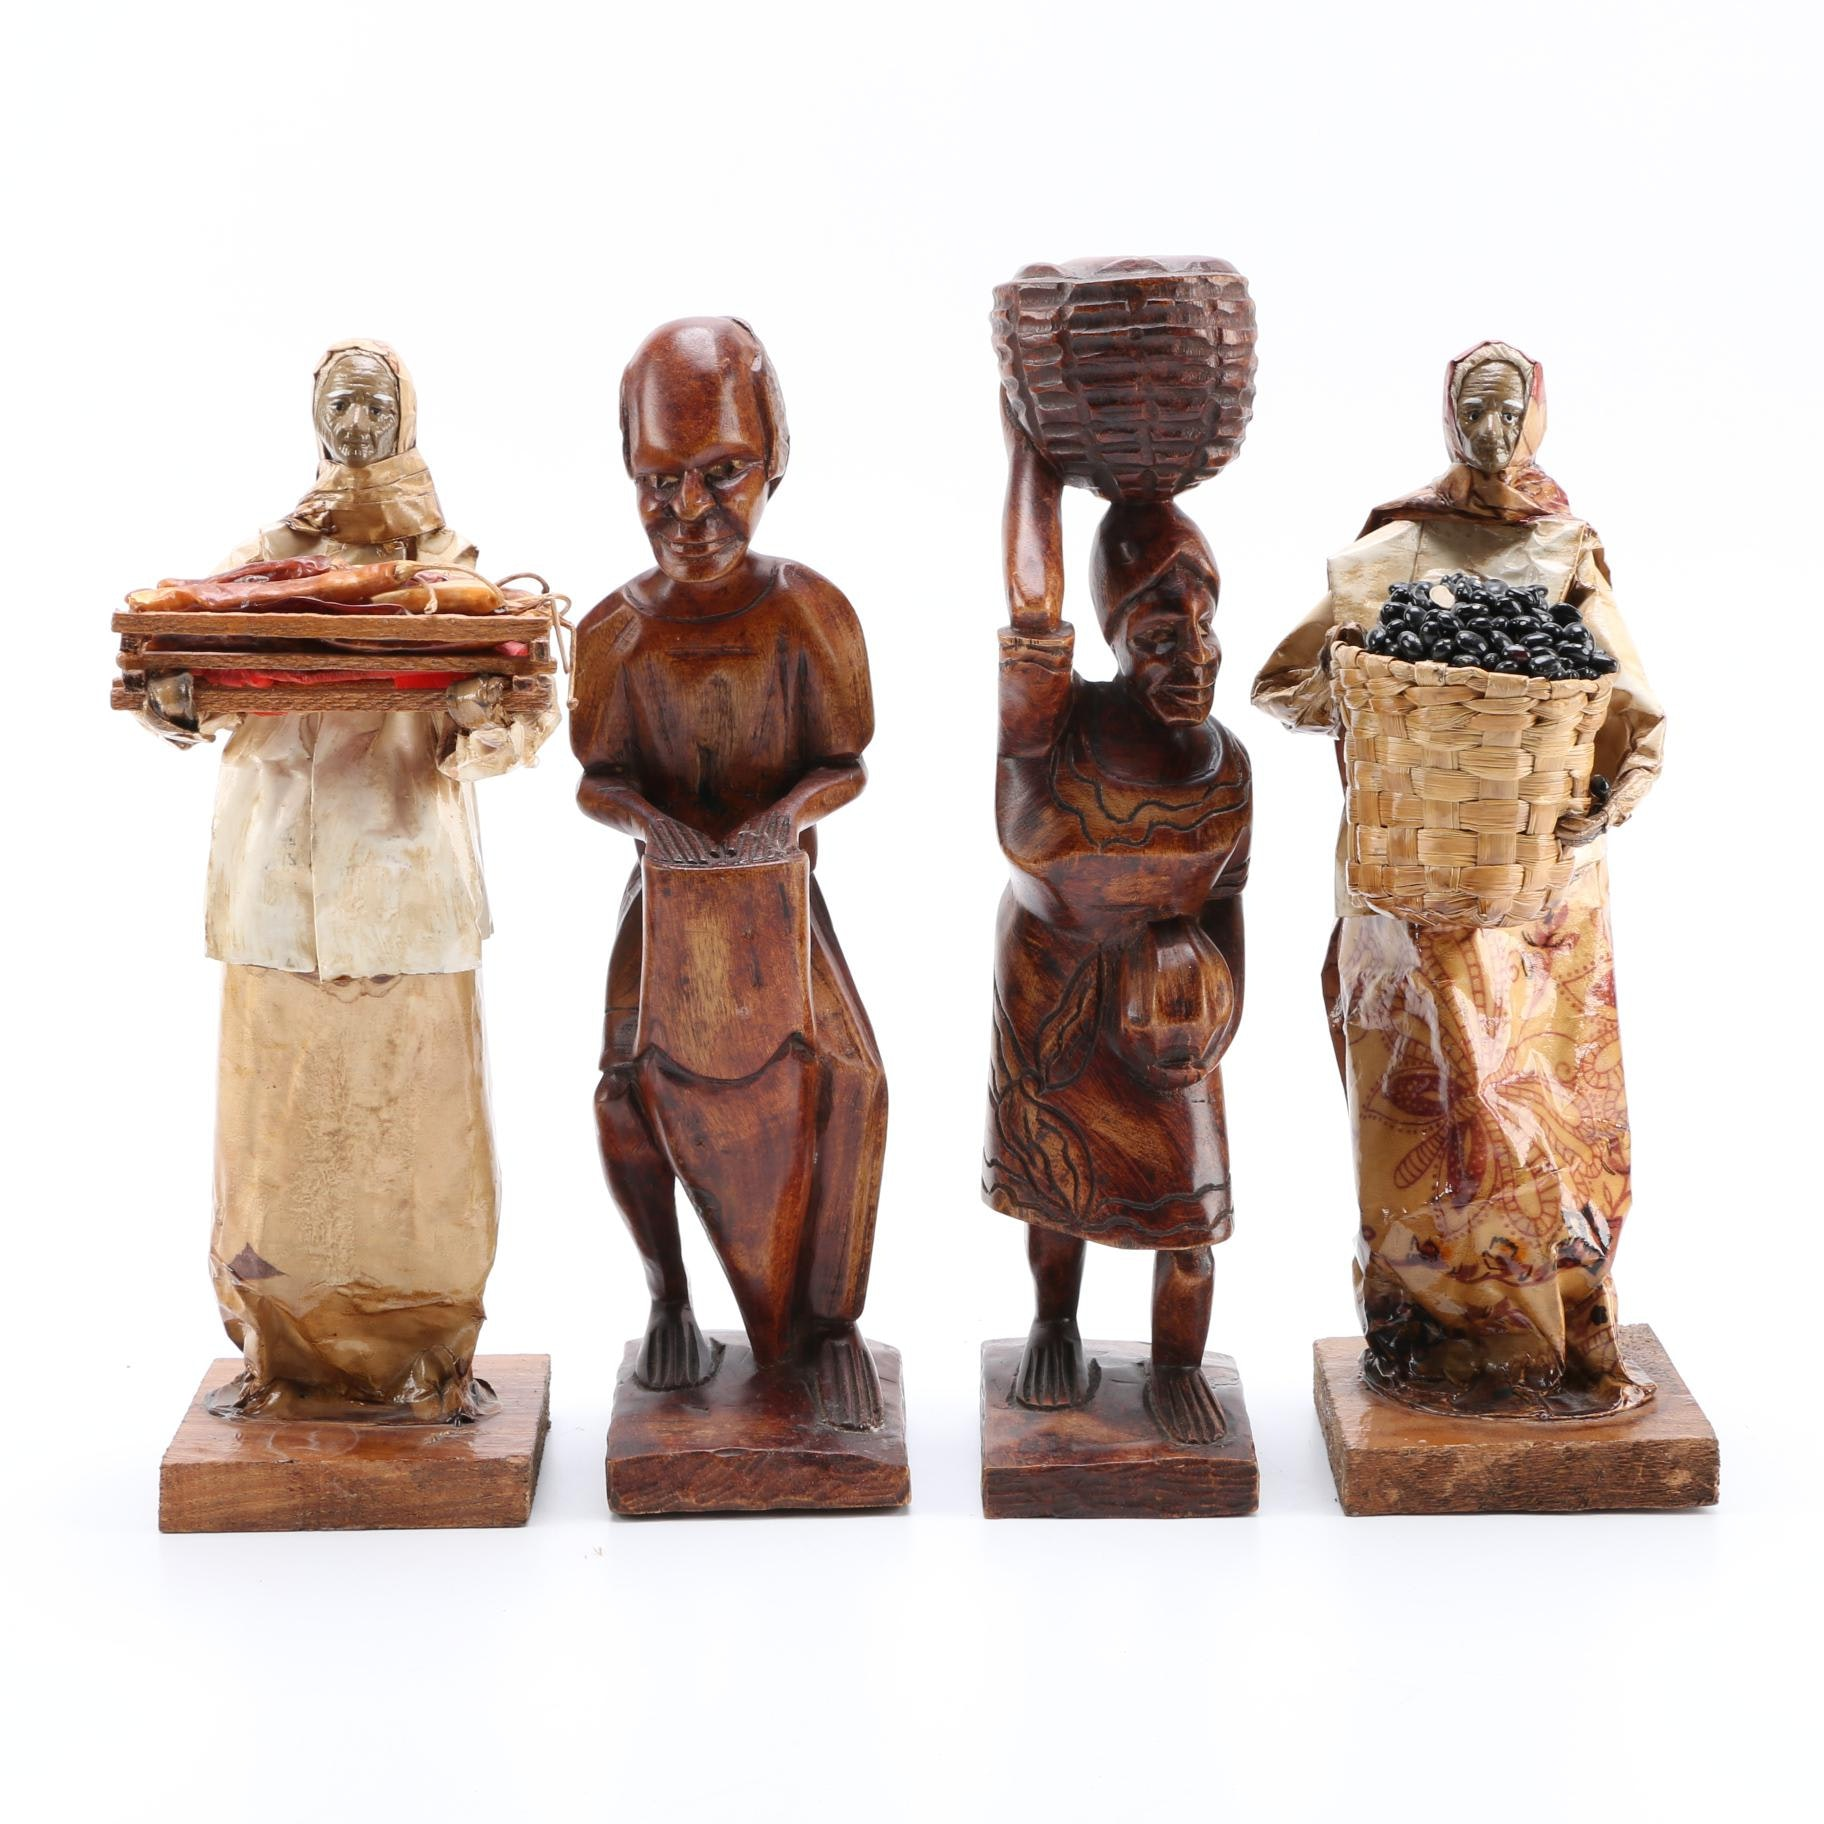 Wooden and Papier-mâché Figurines